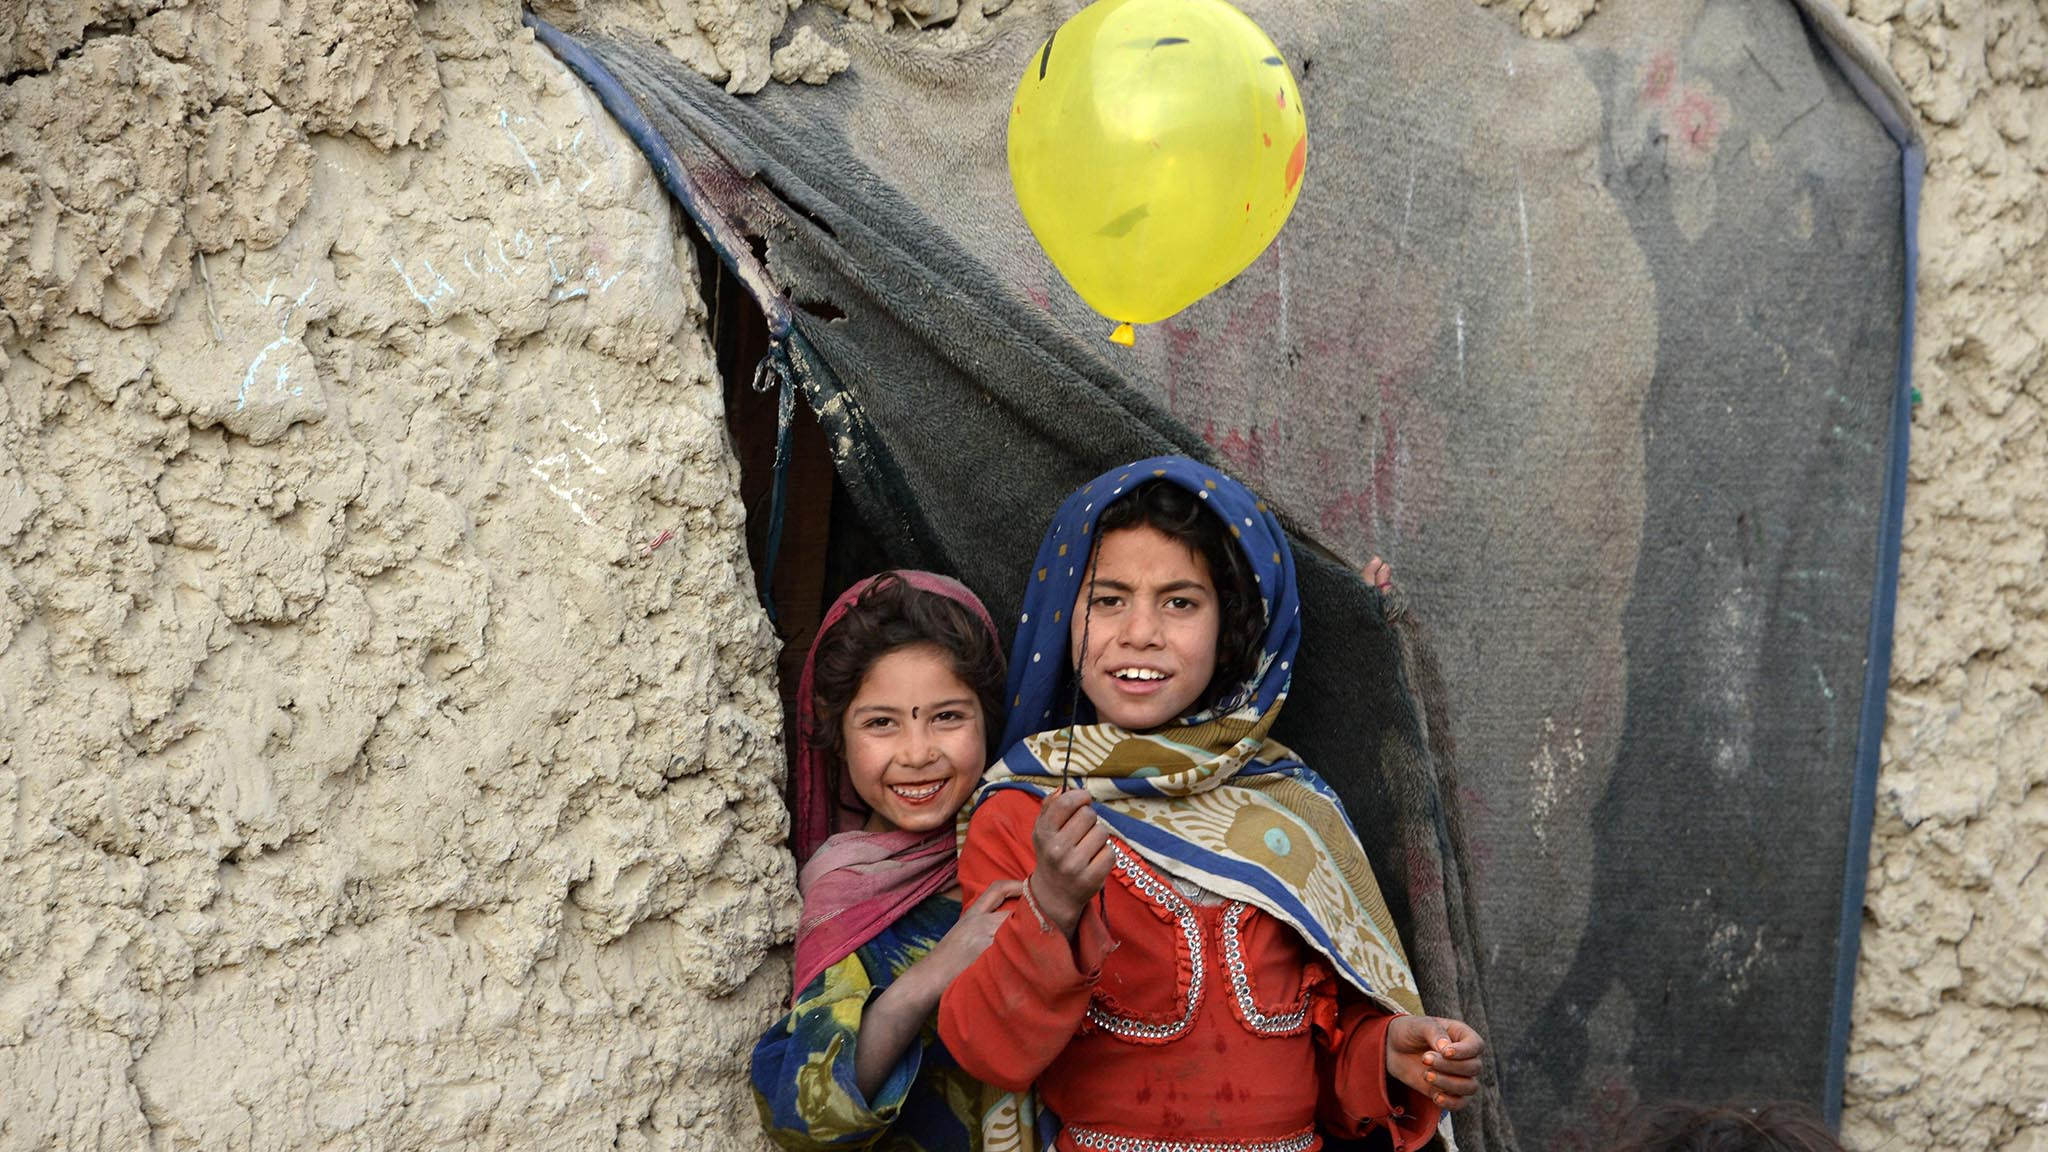 Internally displaced Afghan children